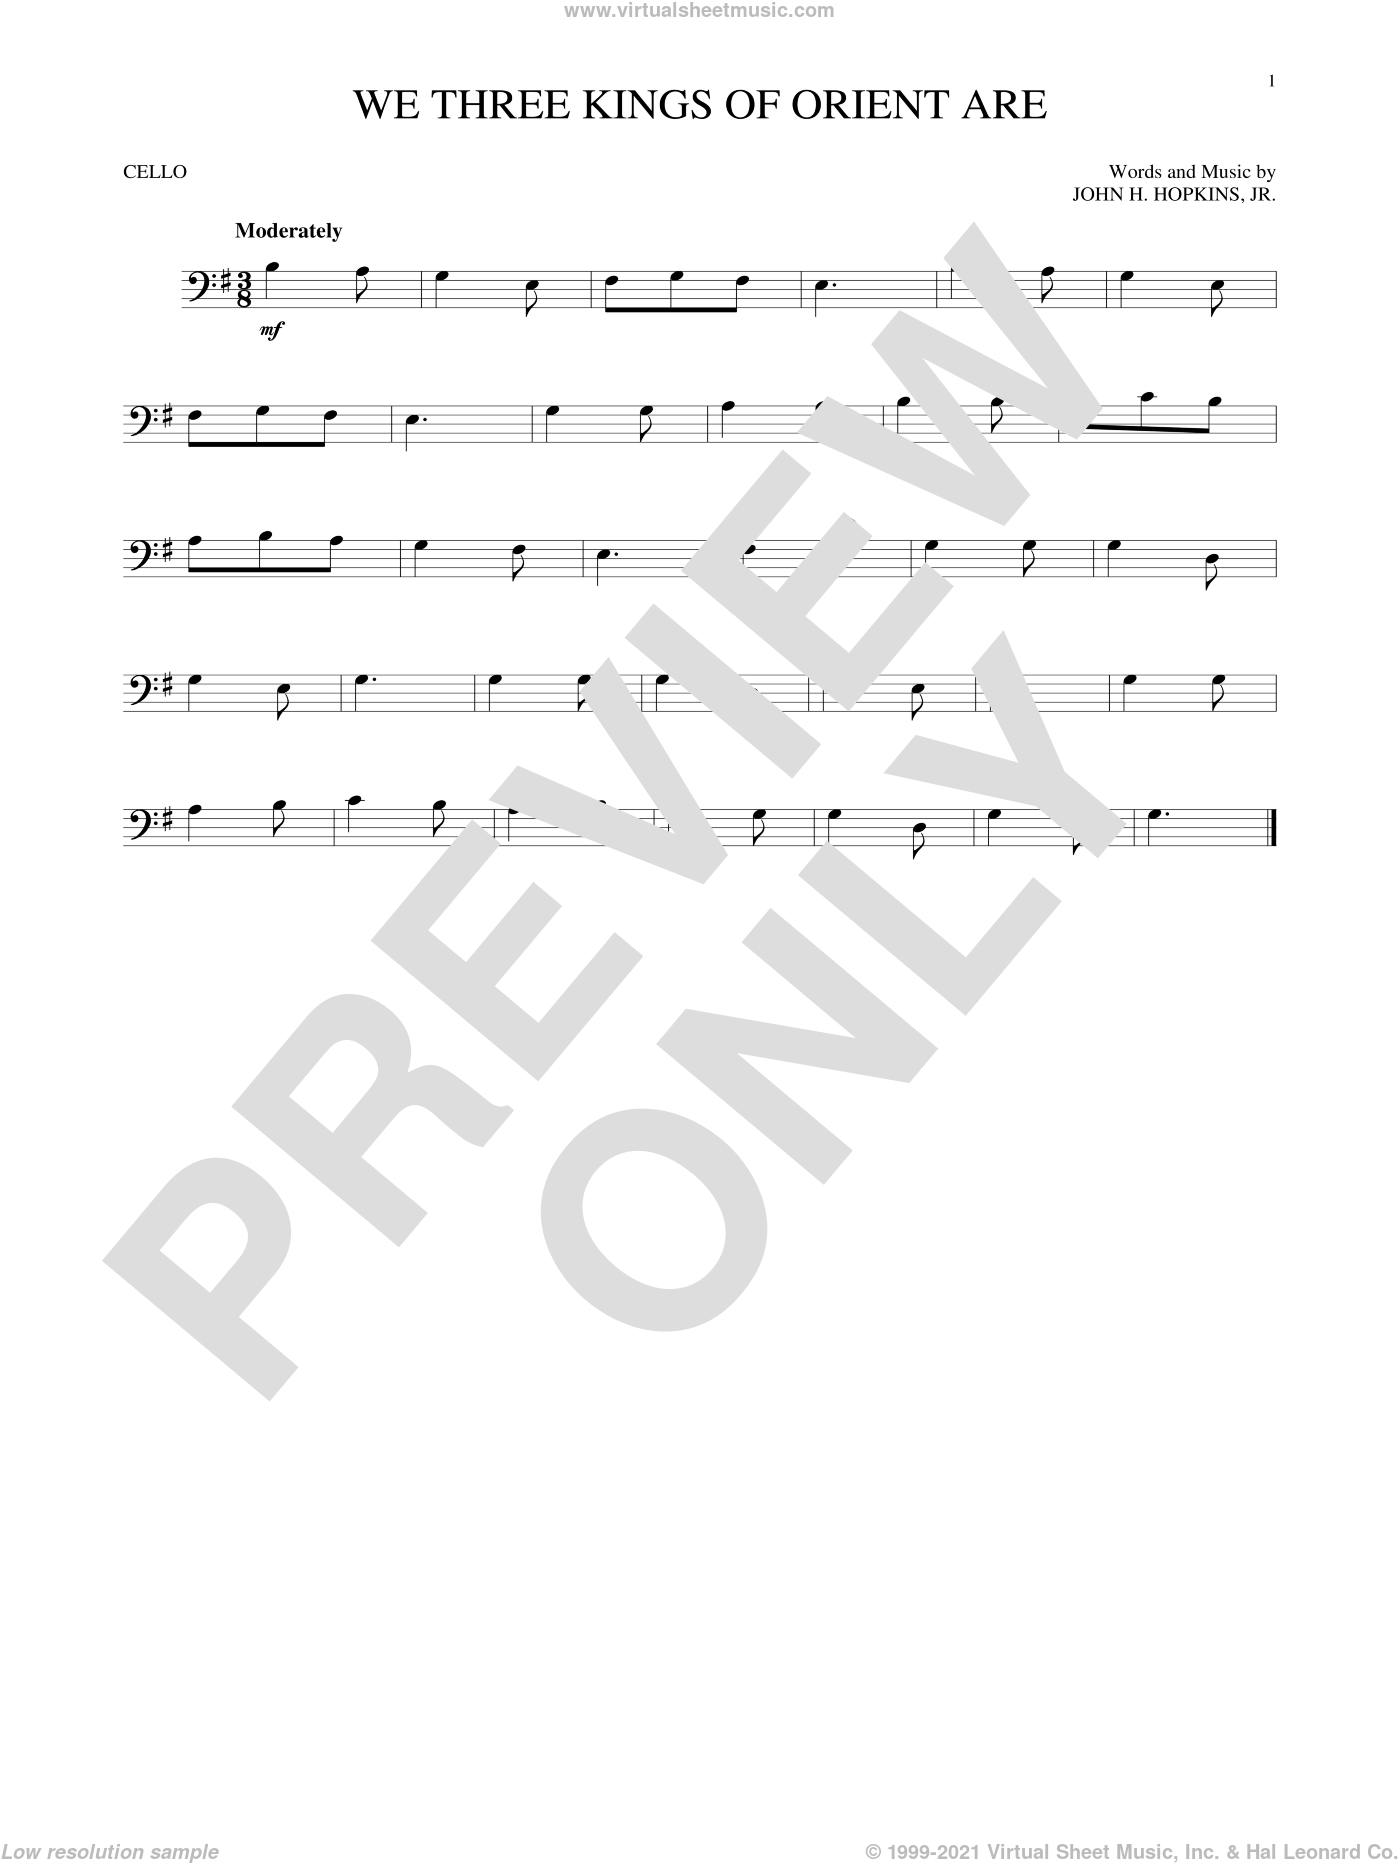 We Three Kings Of Orient Are sheet music for cello solo by John H. Hopkins, Jr., intermediate skill level